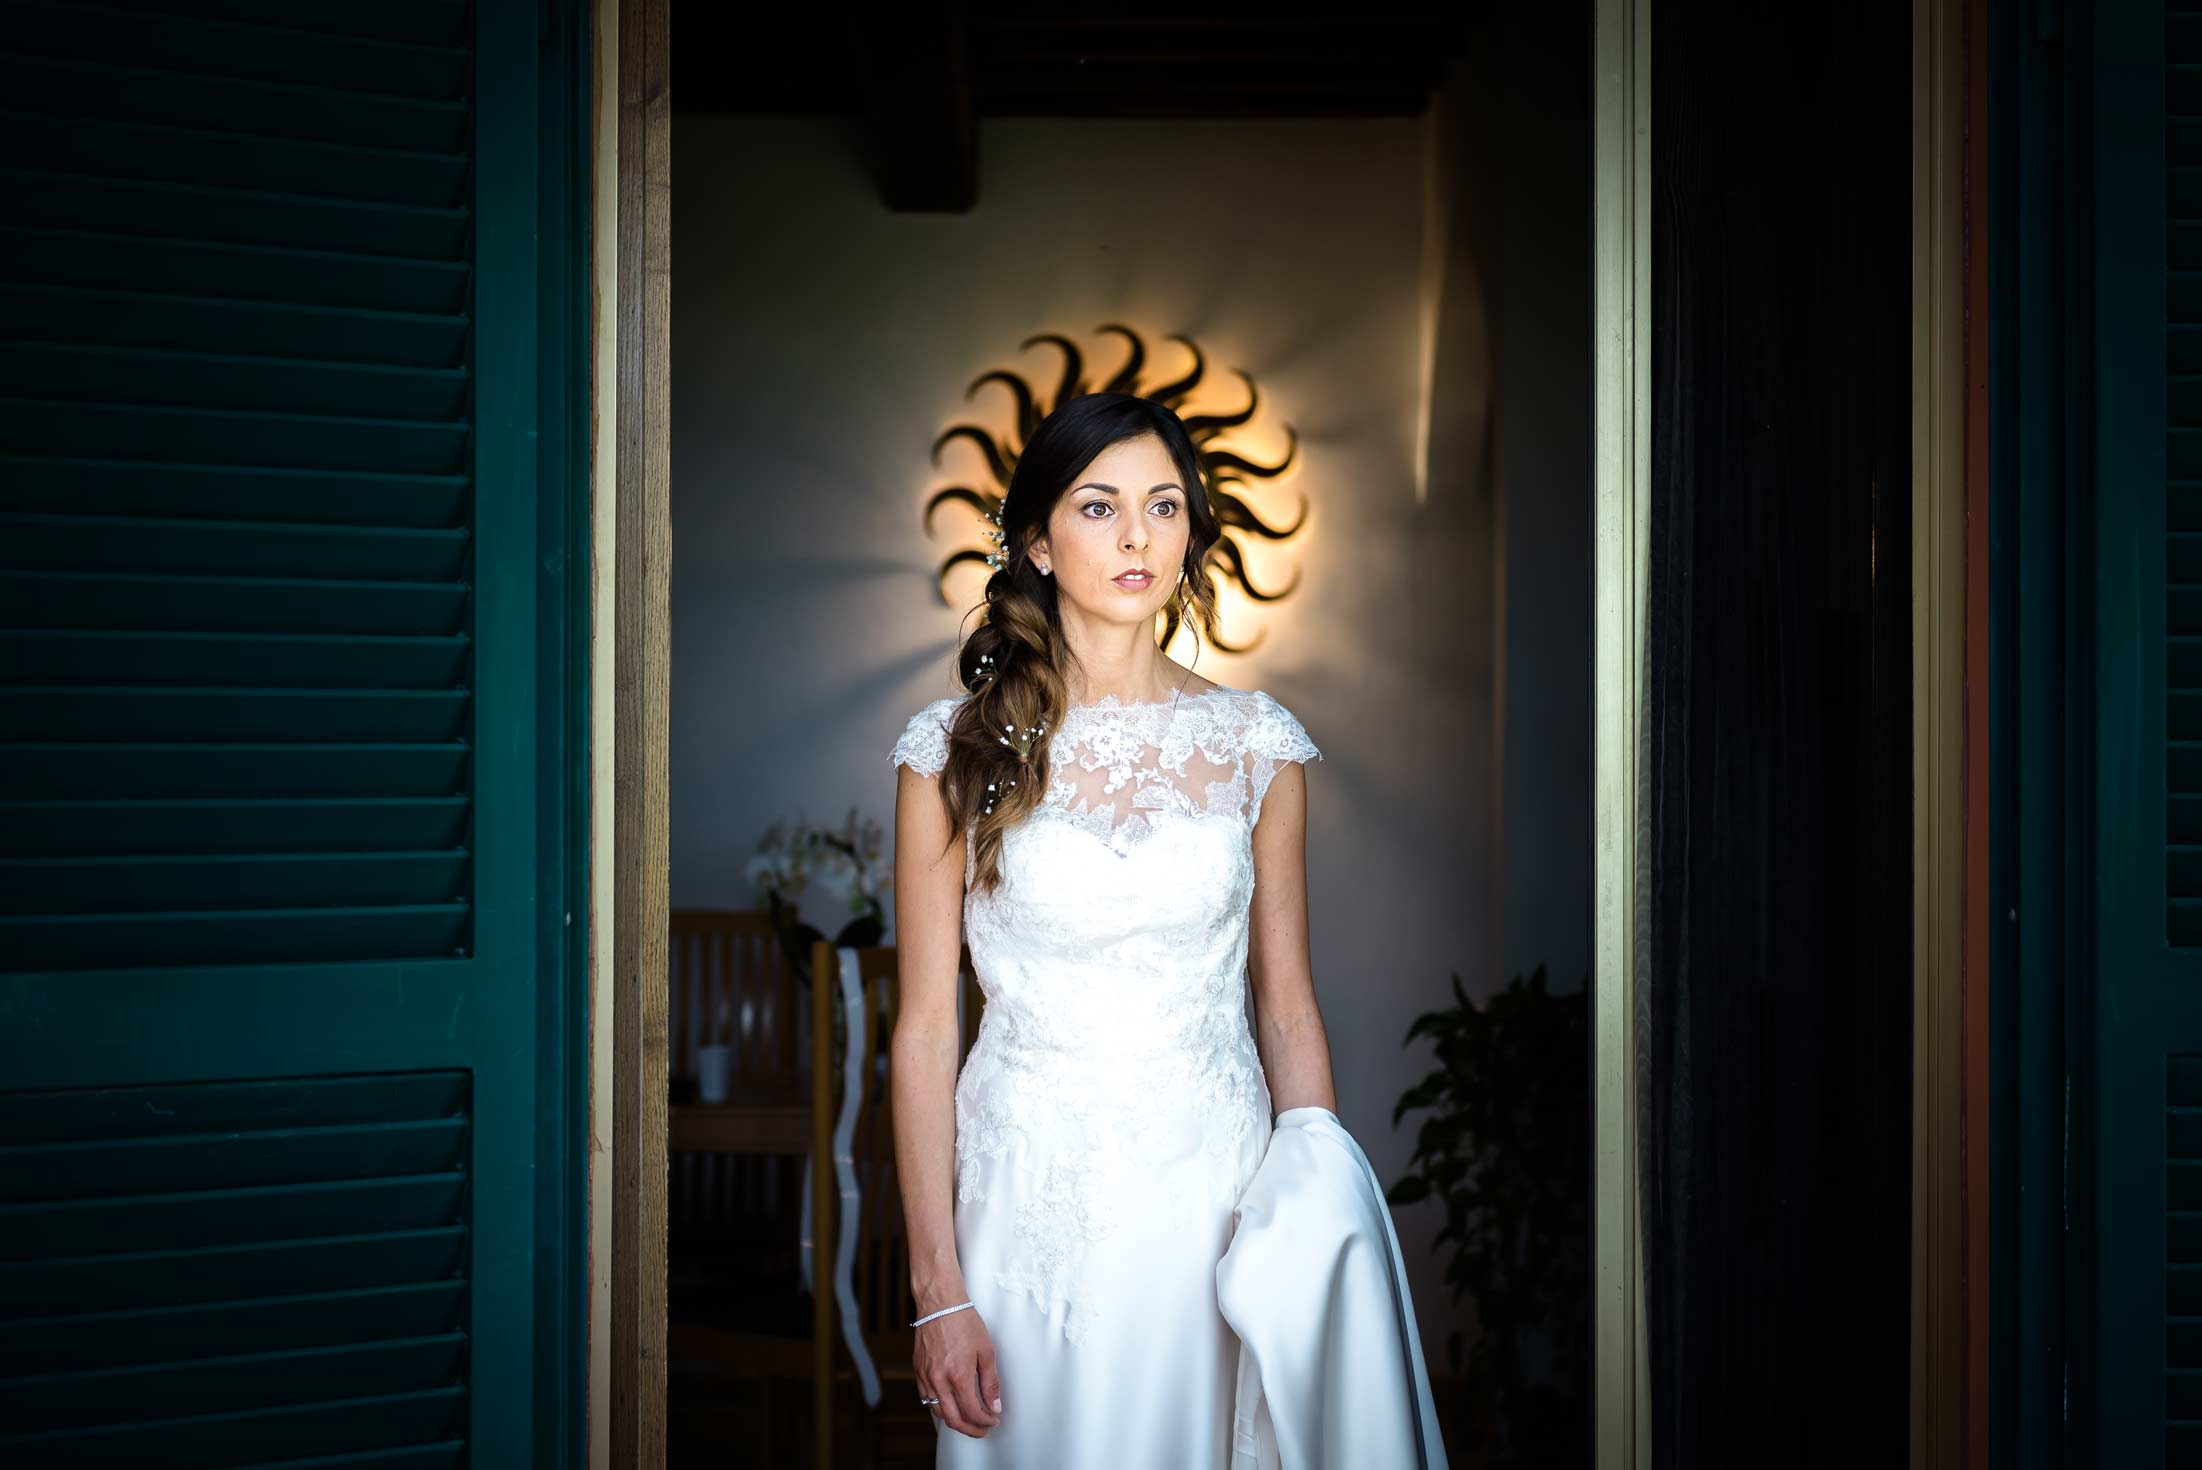 Reportage-Wedding-Photography-Italy-1-Bride